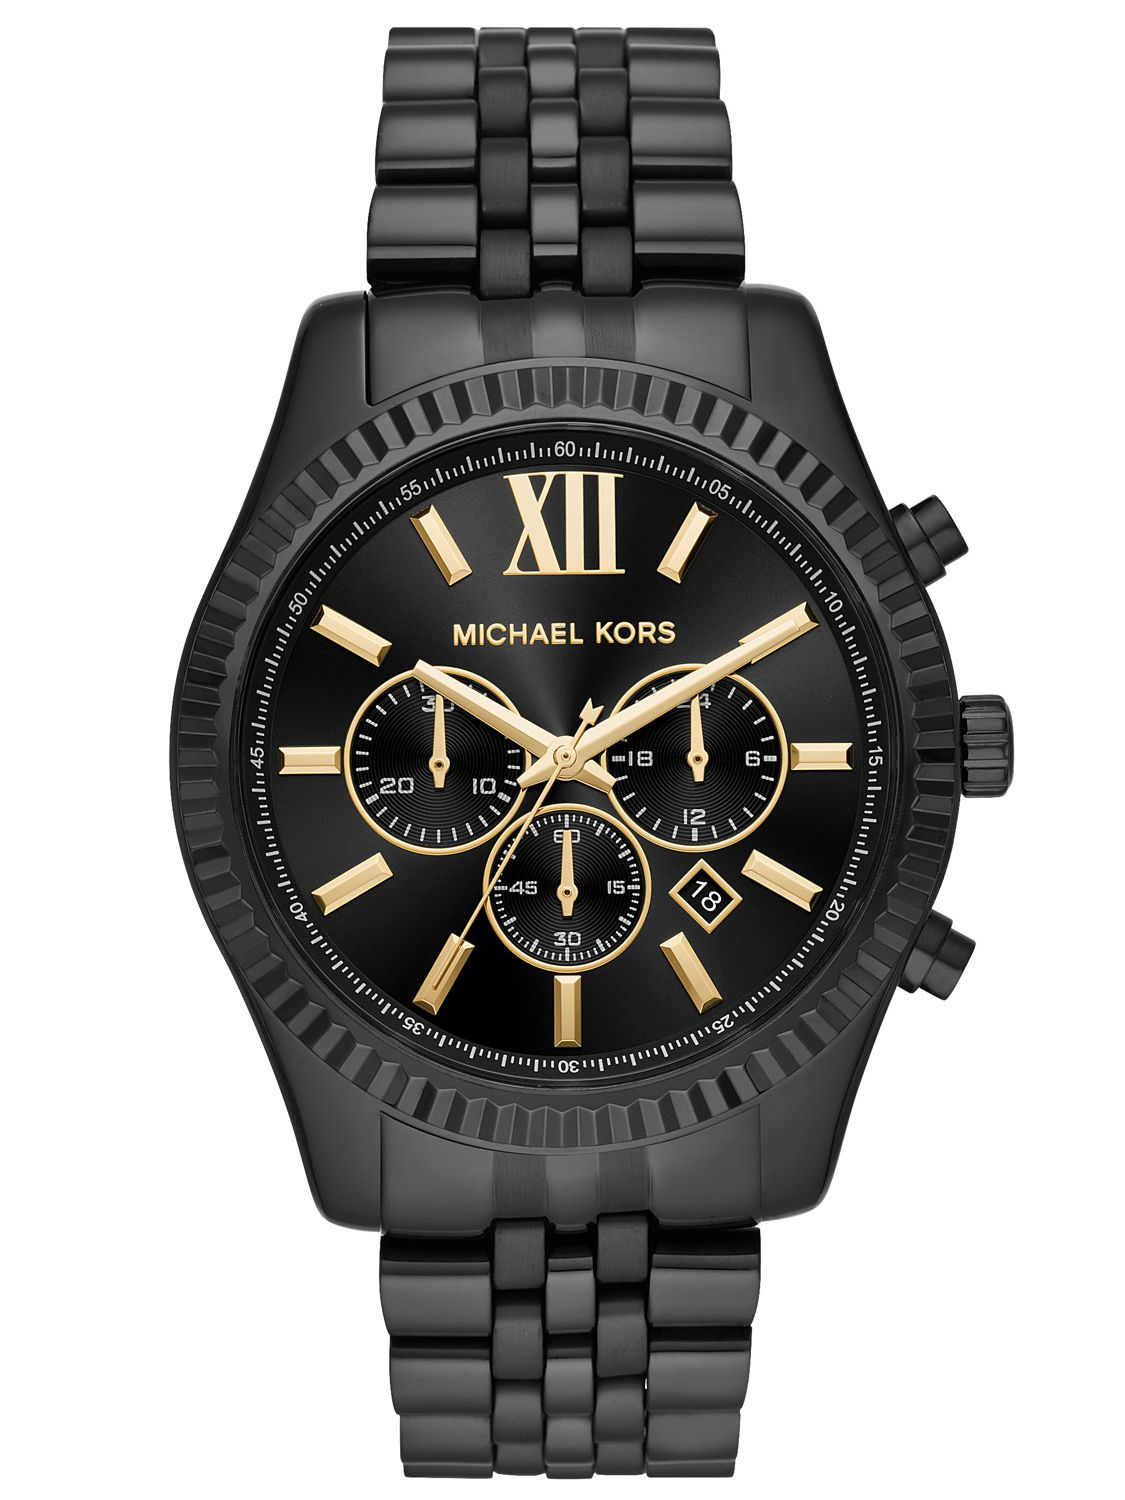 66d04f91789c Michael Kors MK8603 Mens Watch Chronograph Lexington Image 1 ...